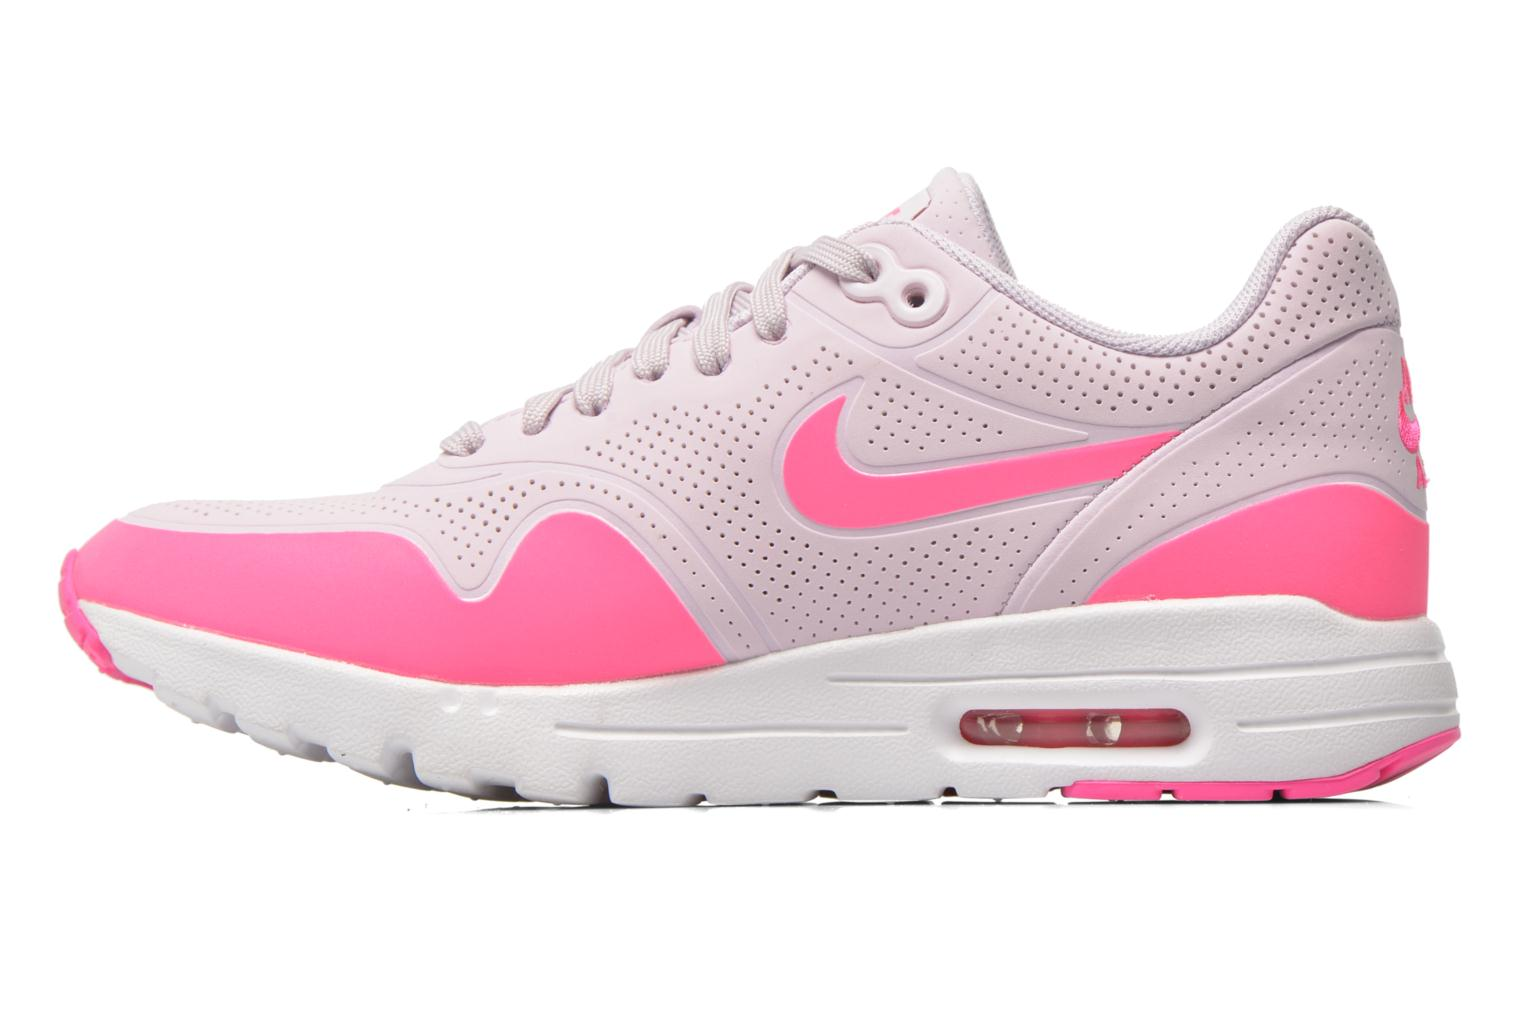 Wmns Air Max 1 Ultra Moire Bleached Lilac/Pnk Blast-White